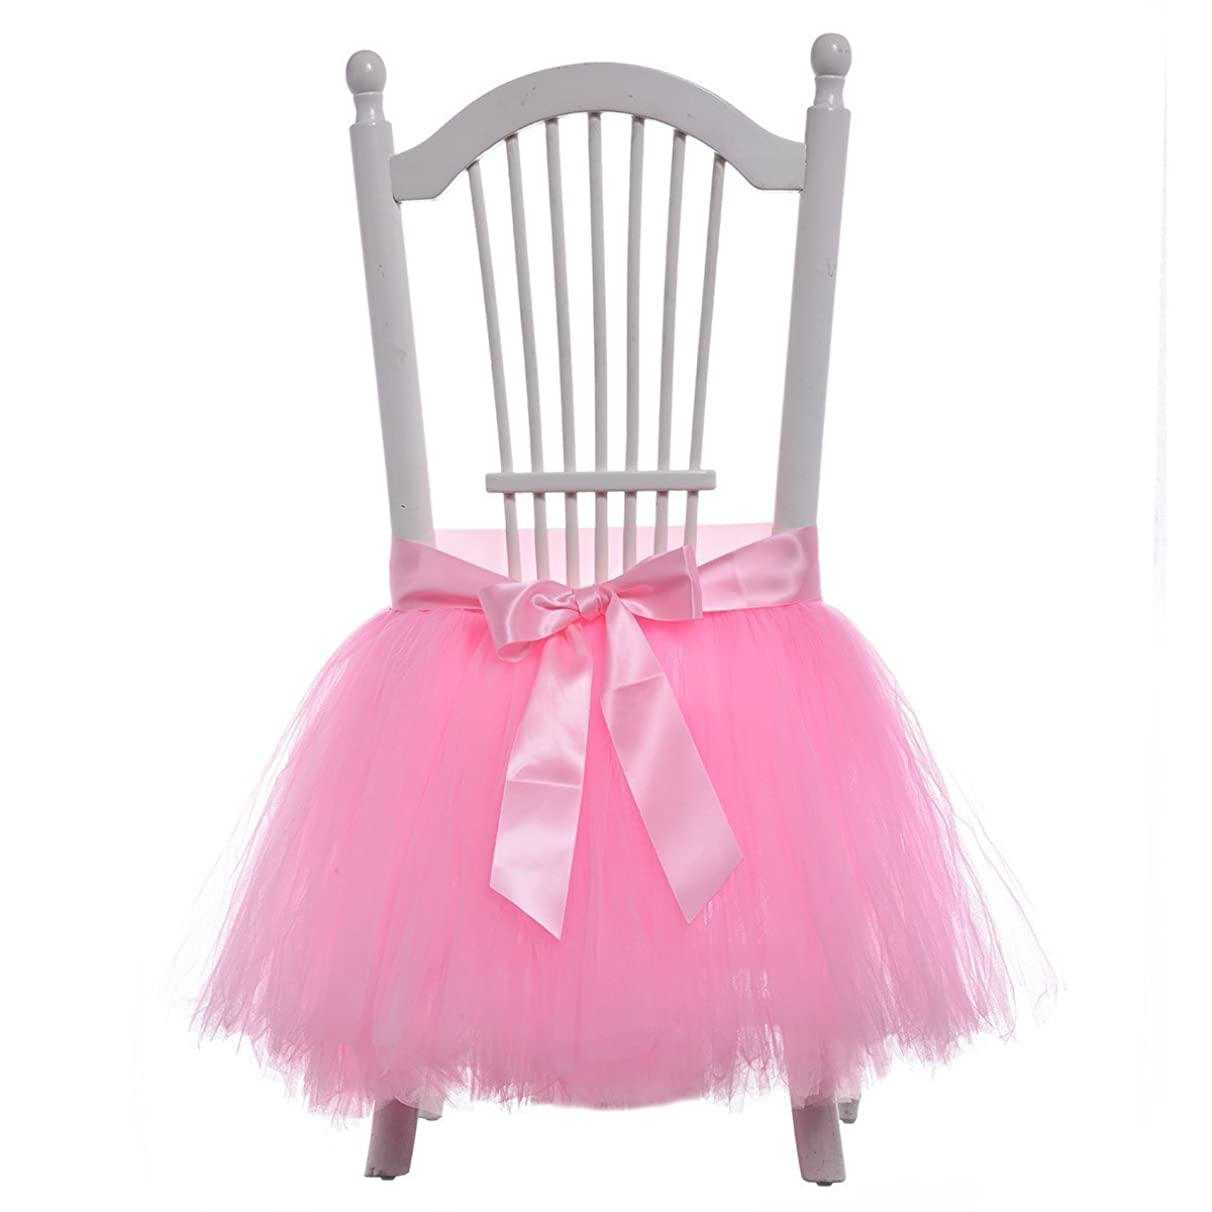 FLYPARTY Handmade Tulle Tutu Chair Skirt with Sash Bow for Party, Wedding & Home Decoration (Pink)